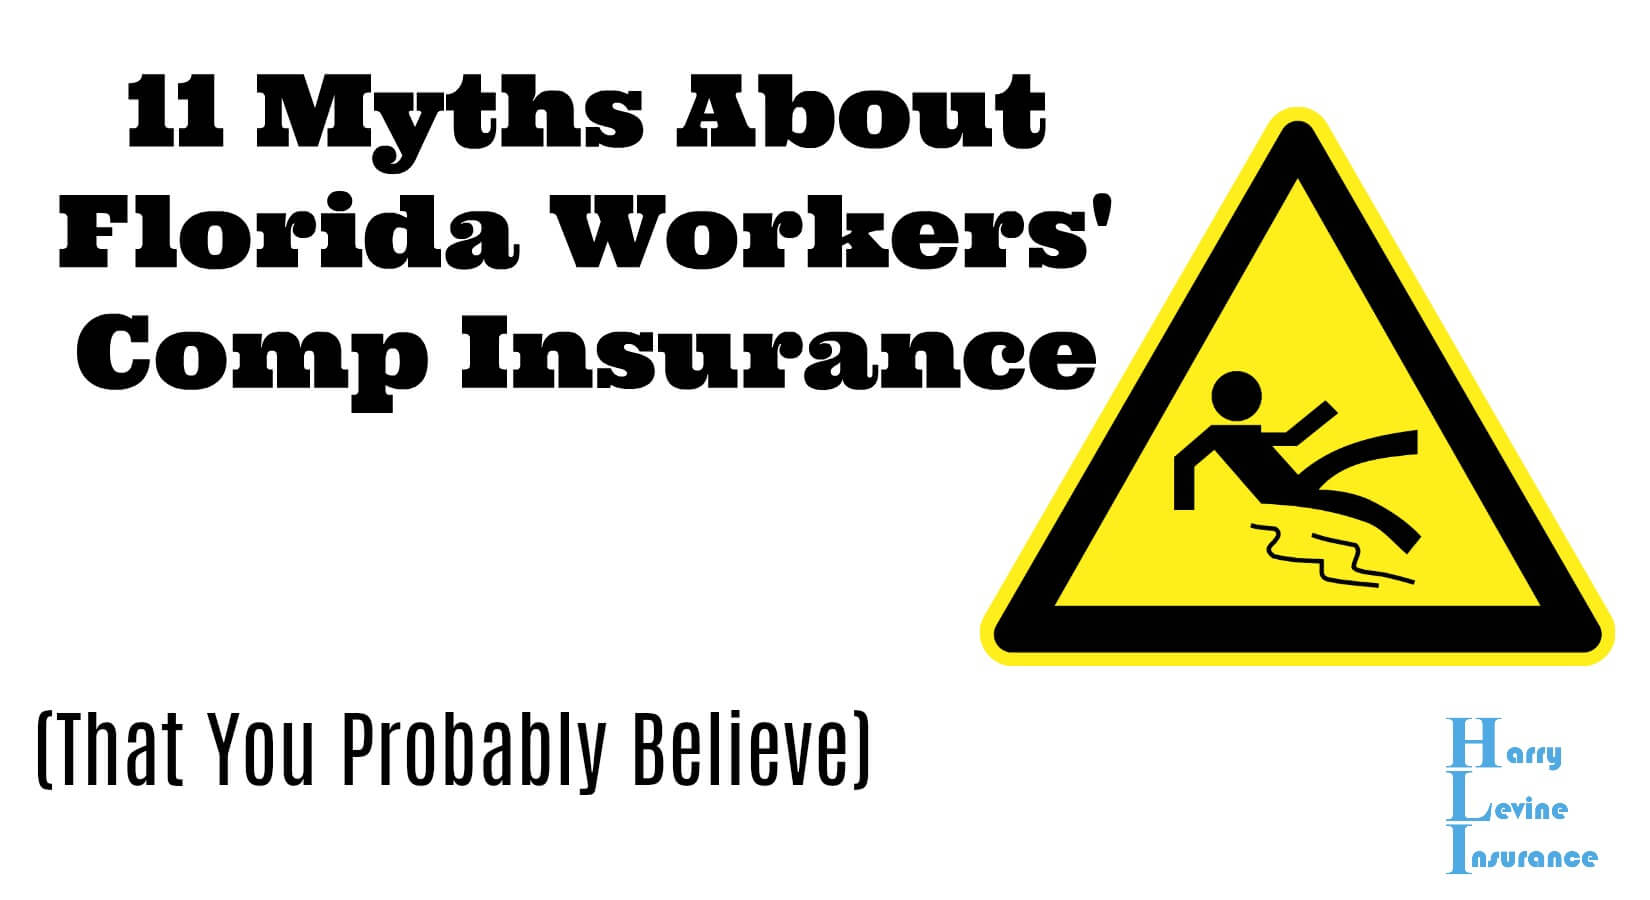 Workers Compensation Insurance Quote 11 Myths About Florida Workers Comp Insurance  Harry Levine Insurance